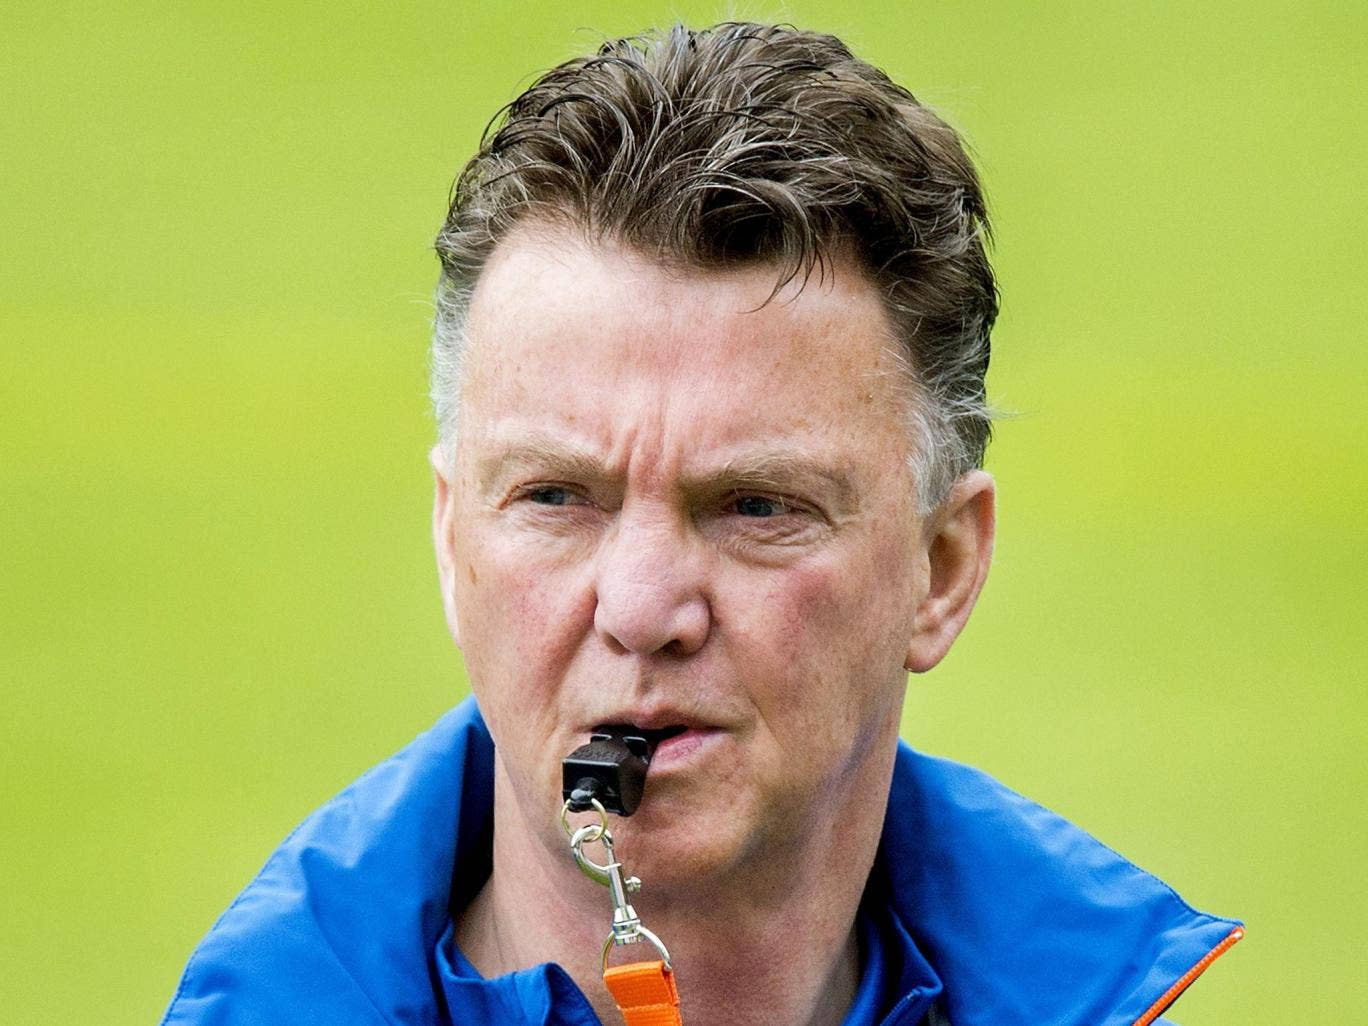 Louis van Gaal has reportedly given his list of transfer targets to Manchester United